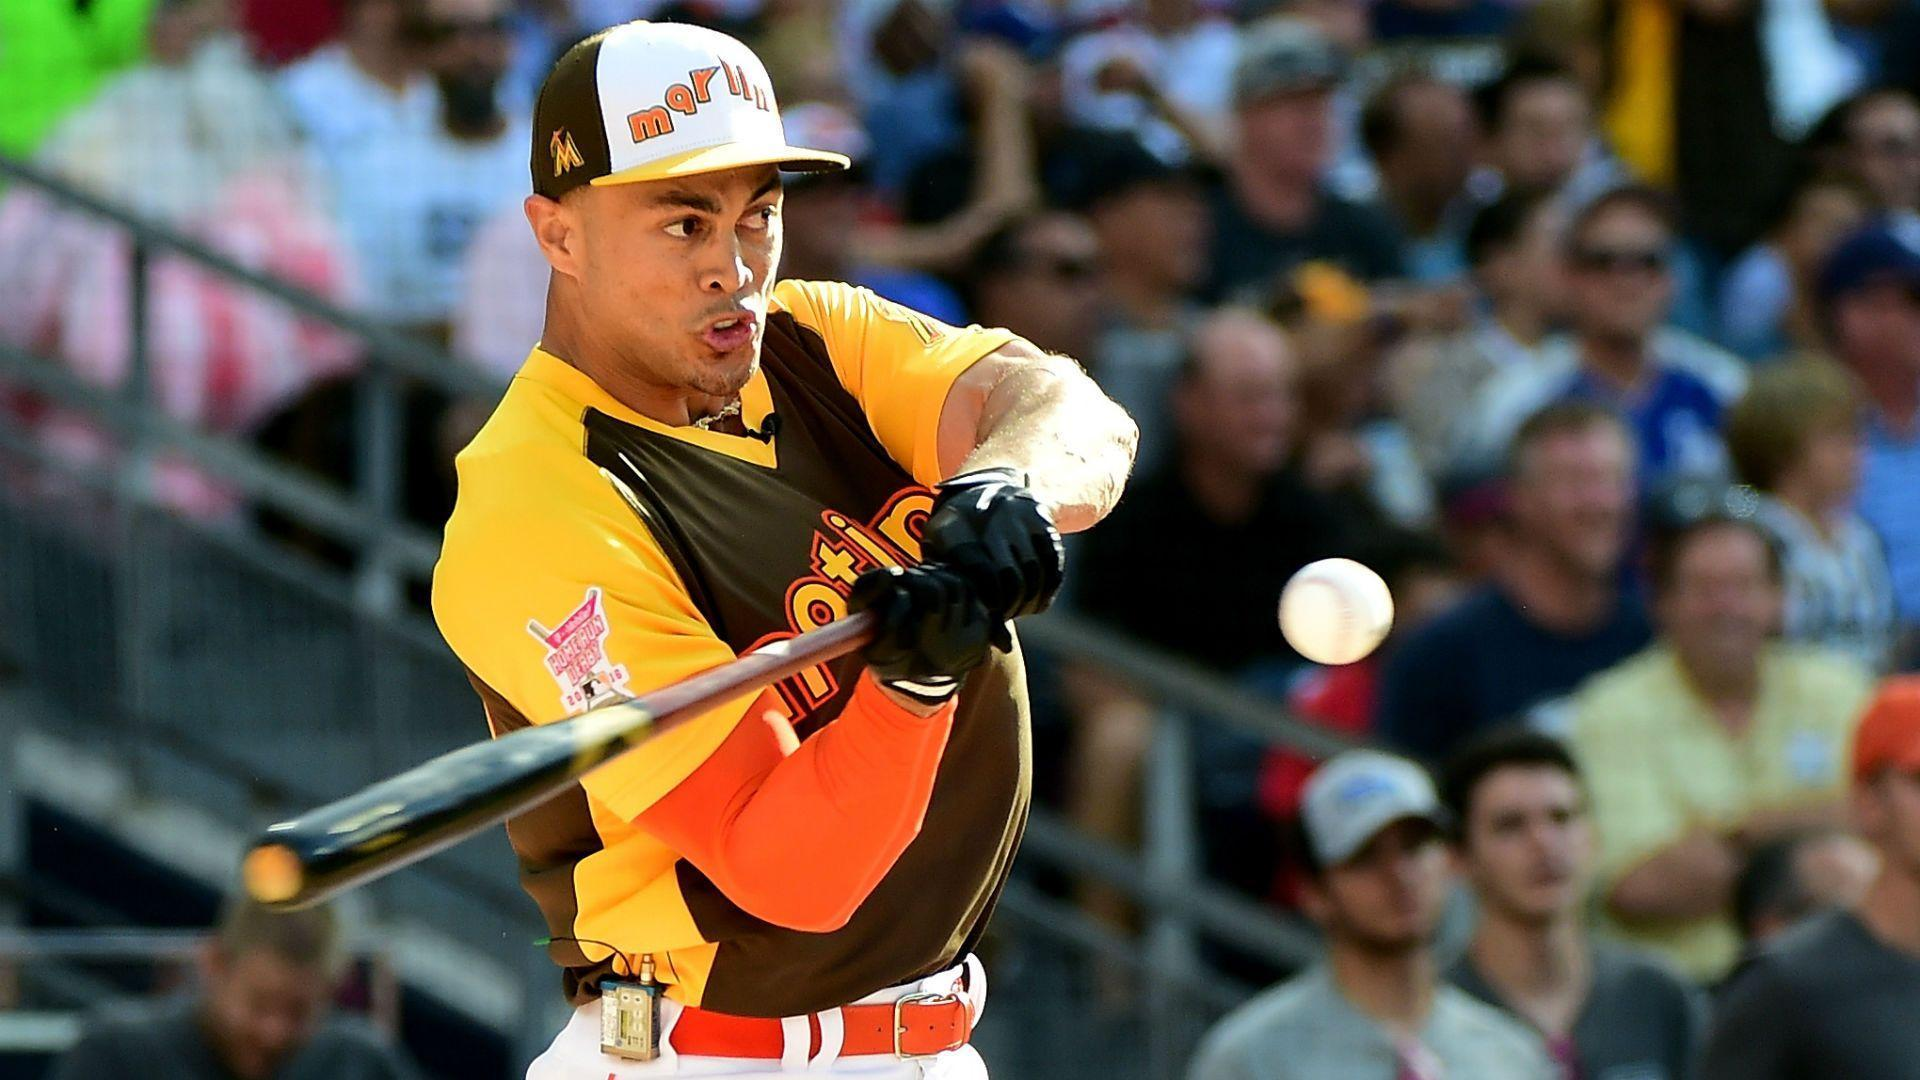 Giancarlo Stanton, not Aaron Judge, is top seed for Home Run Derby ...